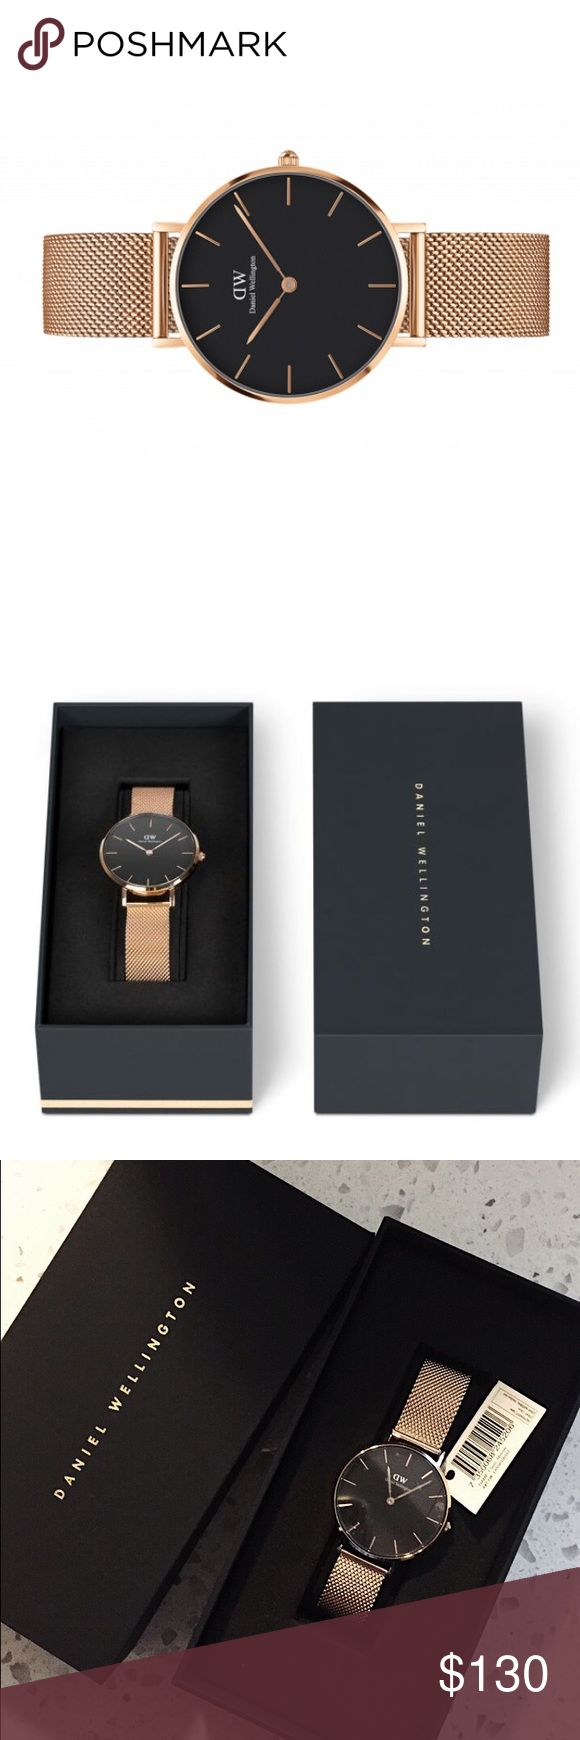 Daniel wellington classic petite watch Melrose Strap color: rose gold Size: 32mm  Brand new Original price: $179 Daniel Wellington Accessories Watches